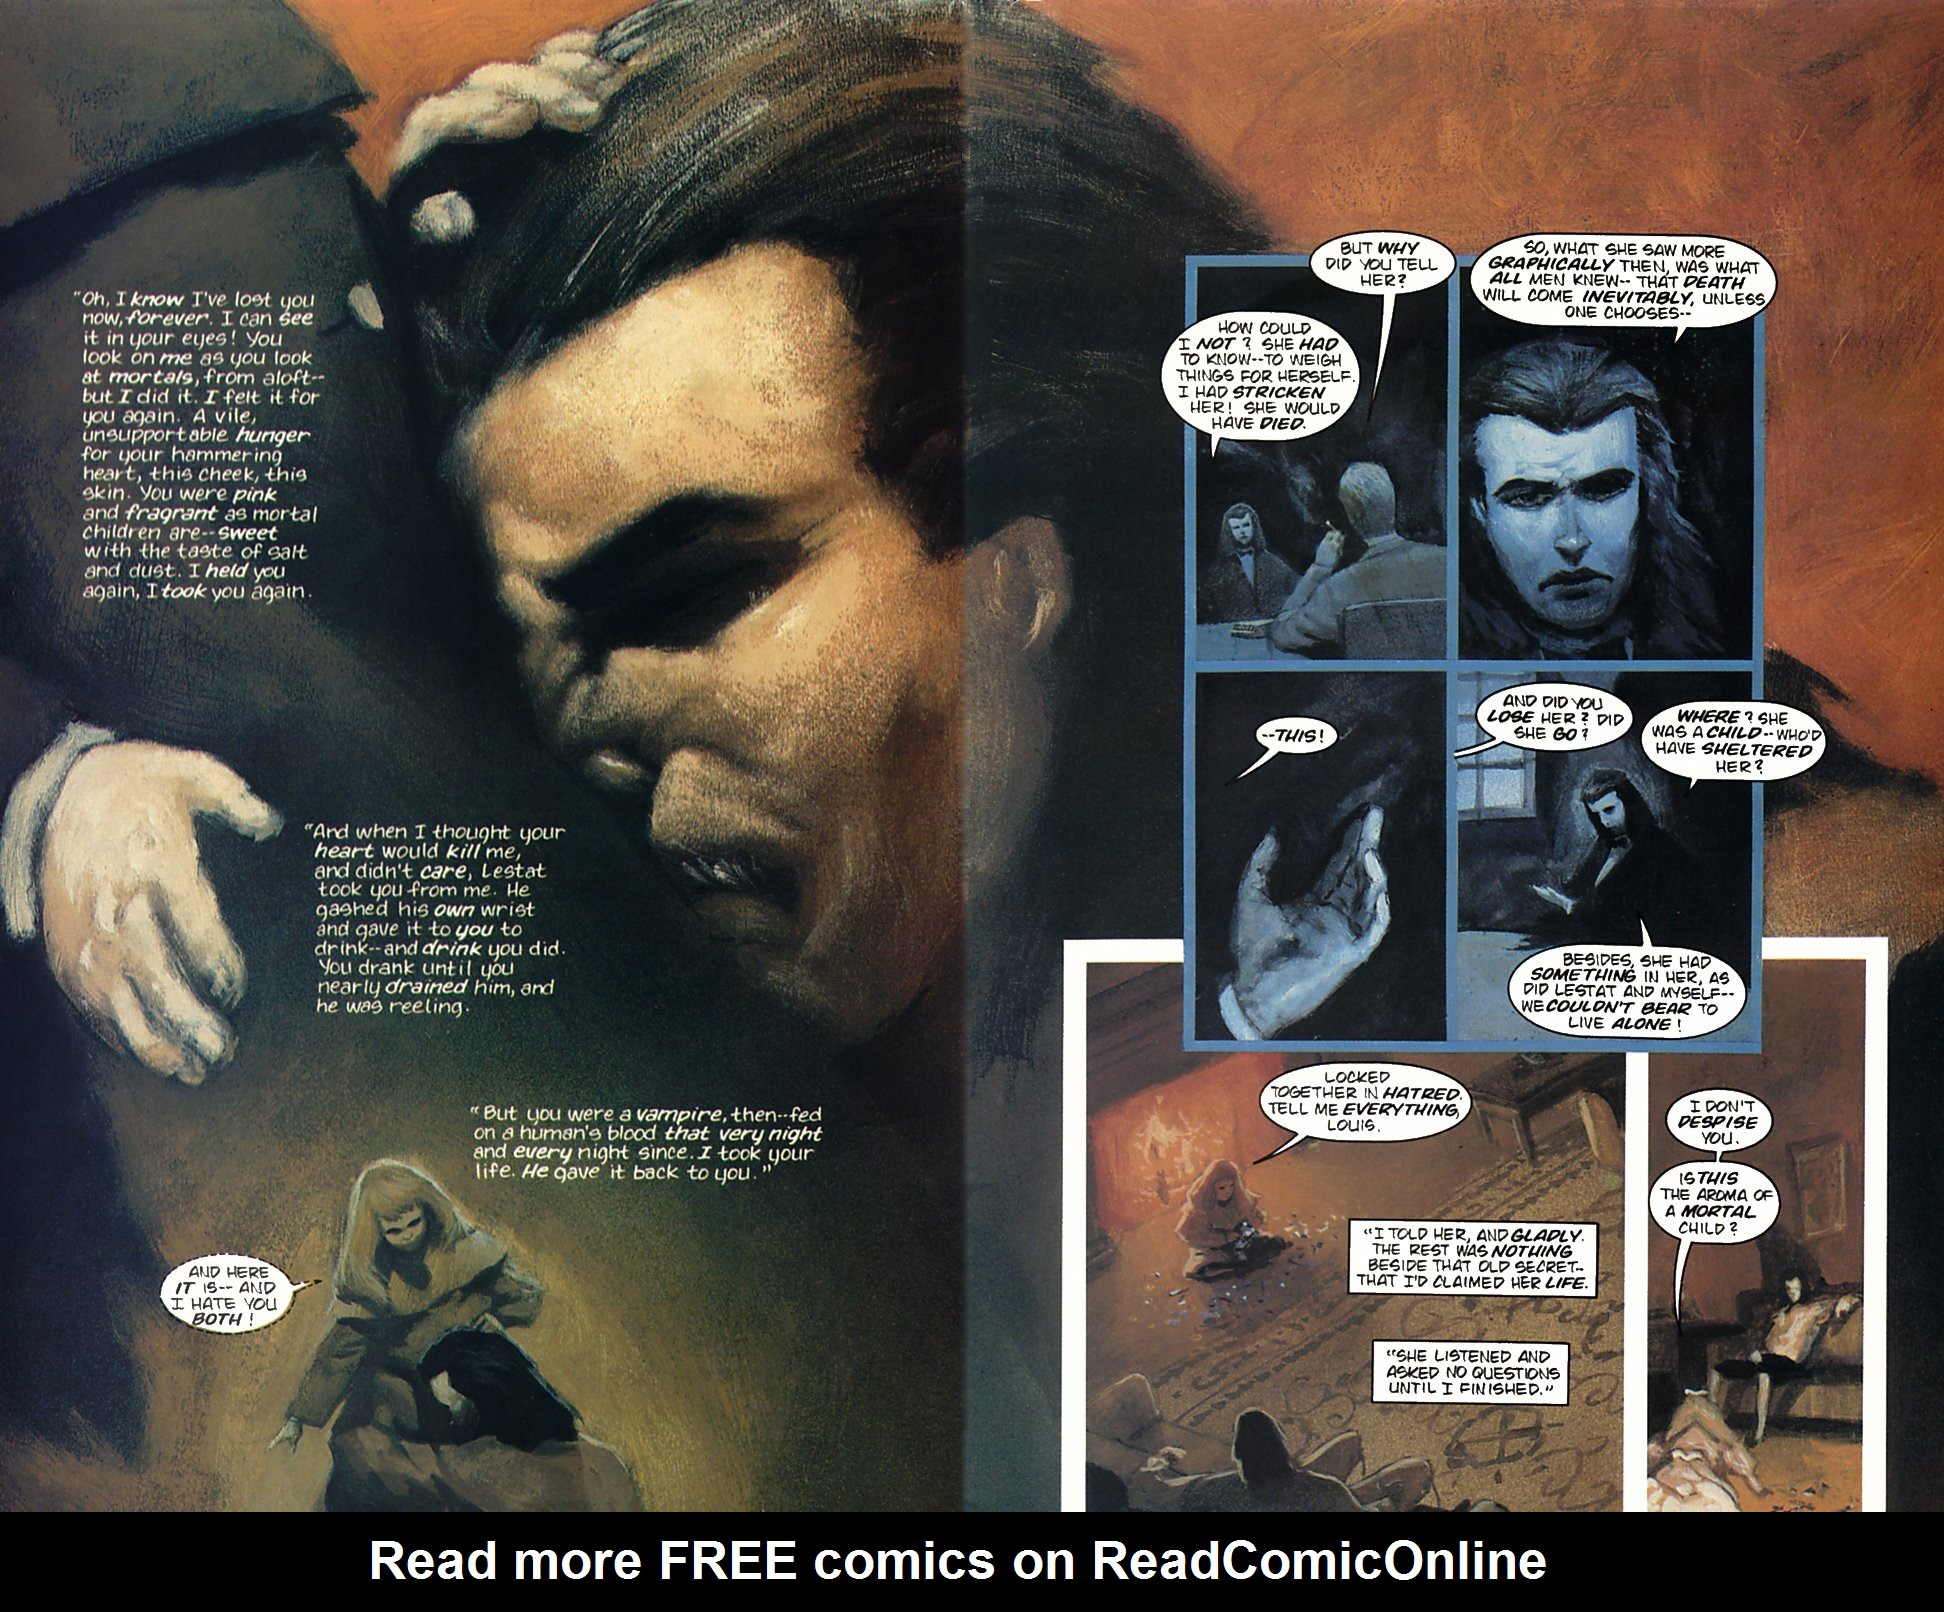 Read online Anne Rice's Interview with the Vampire comic -  Issue #4 - 28